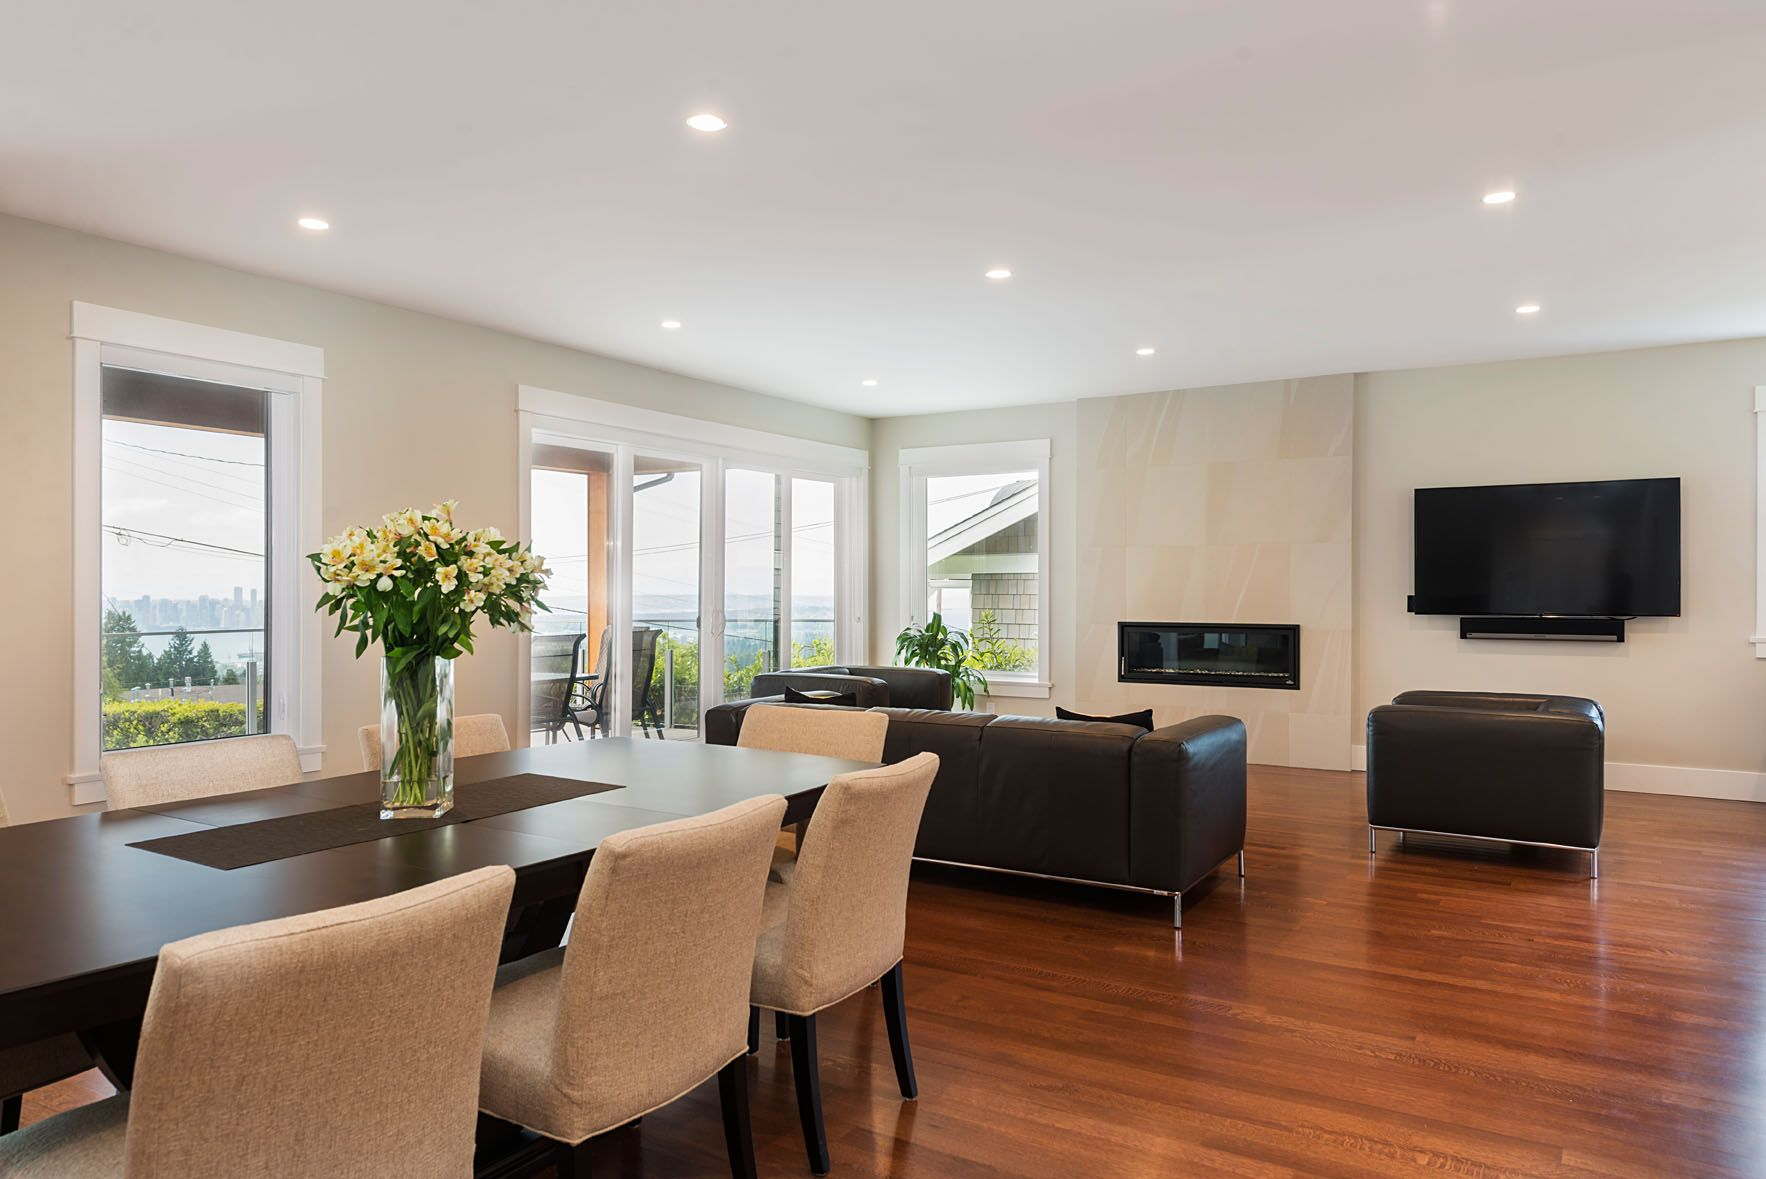 TV placement | Living Room | Pinterest | Tv placement, Living rooms ...